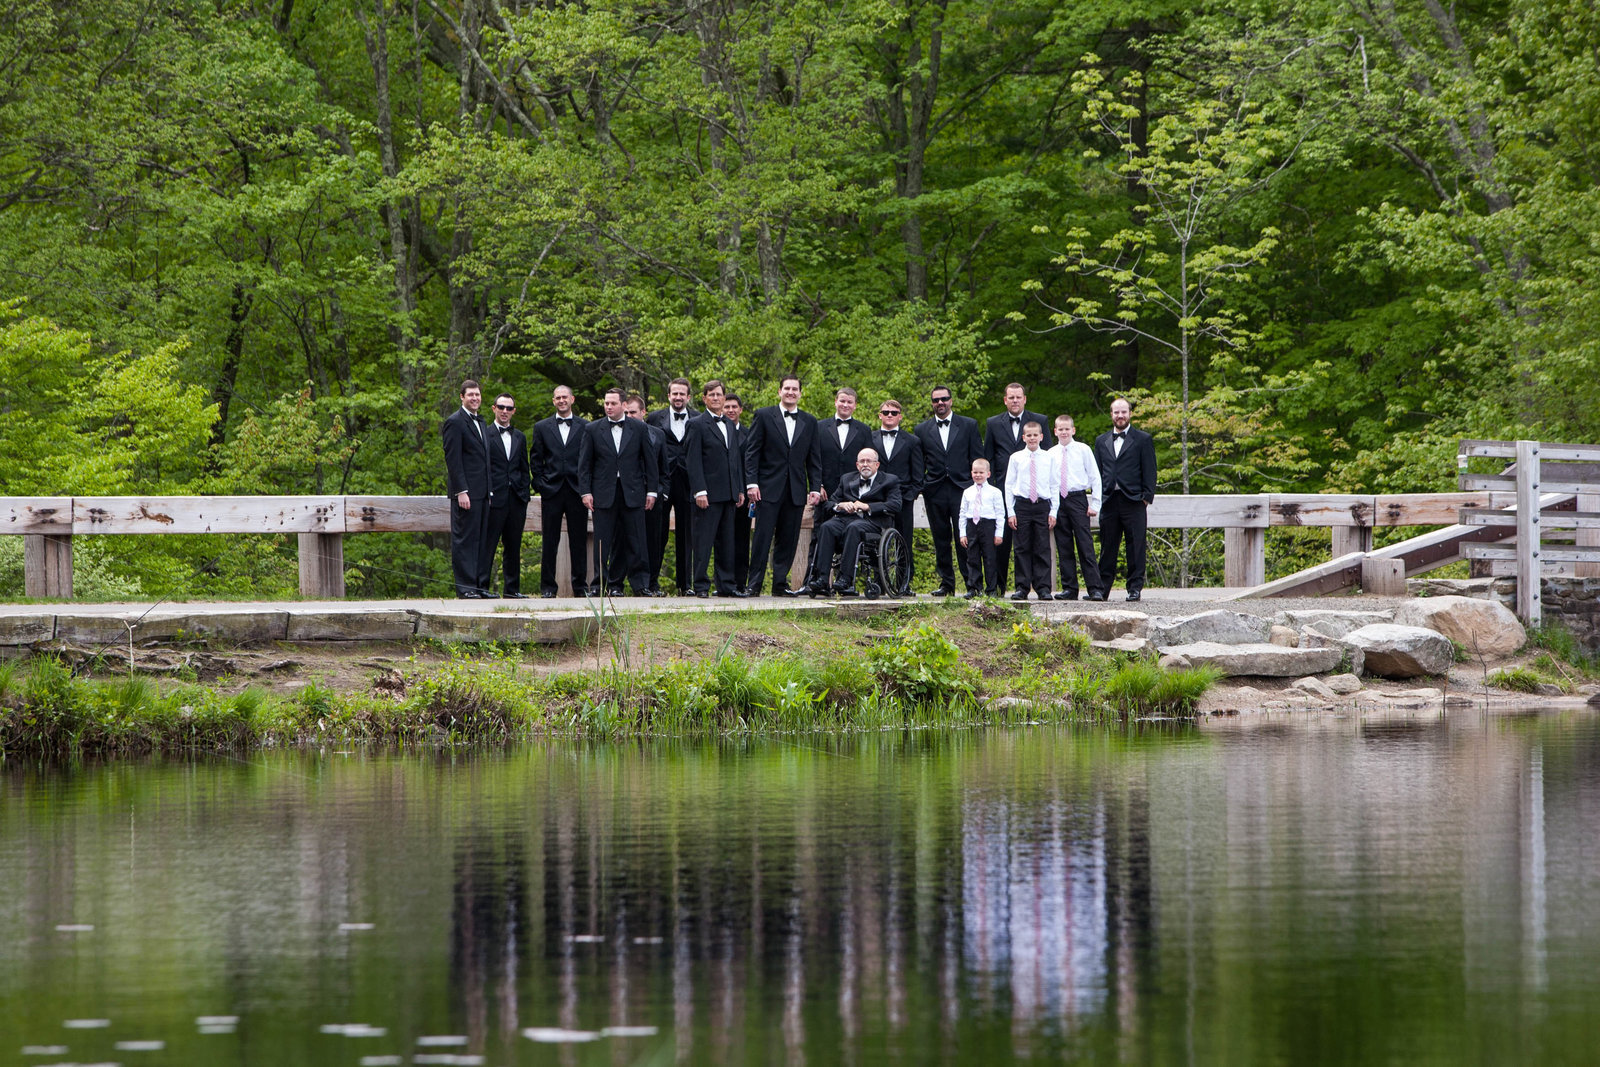 Waterfront bridal party photography